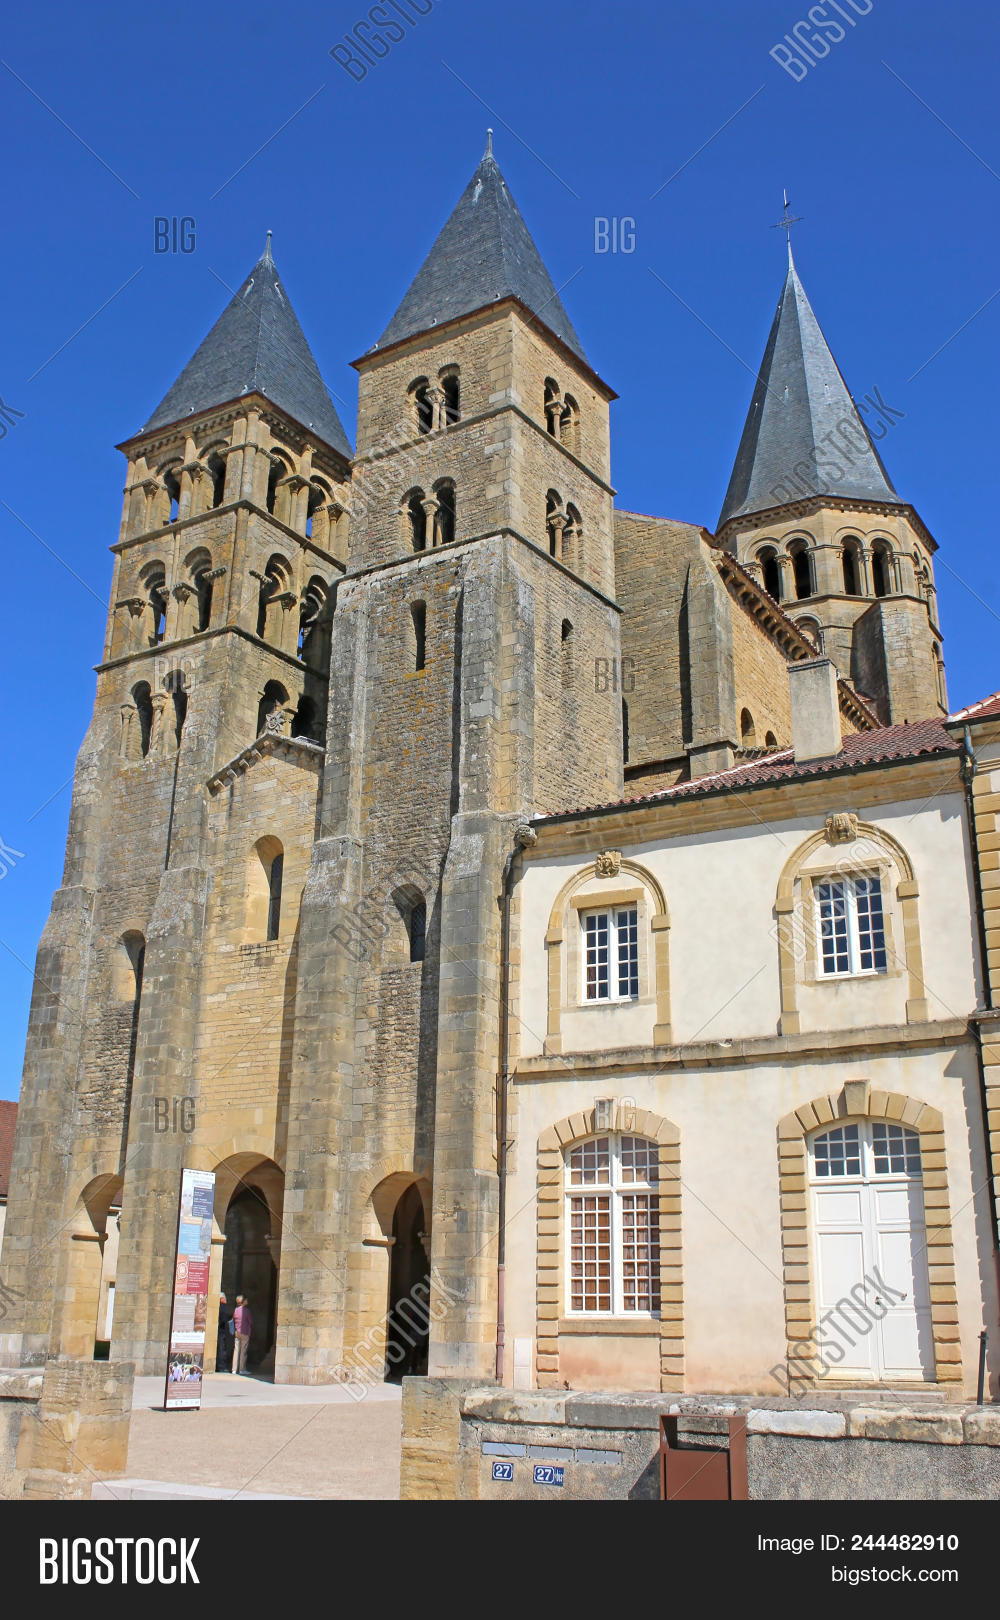 Architecte Paray Le Monial ? basilica of sacre coeur in paray le monial, france